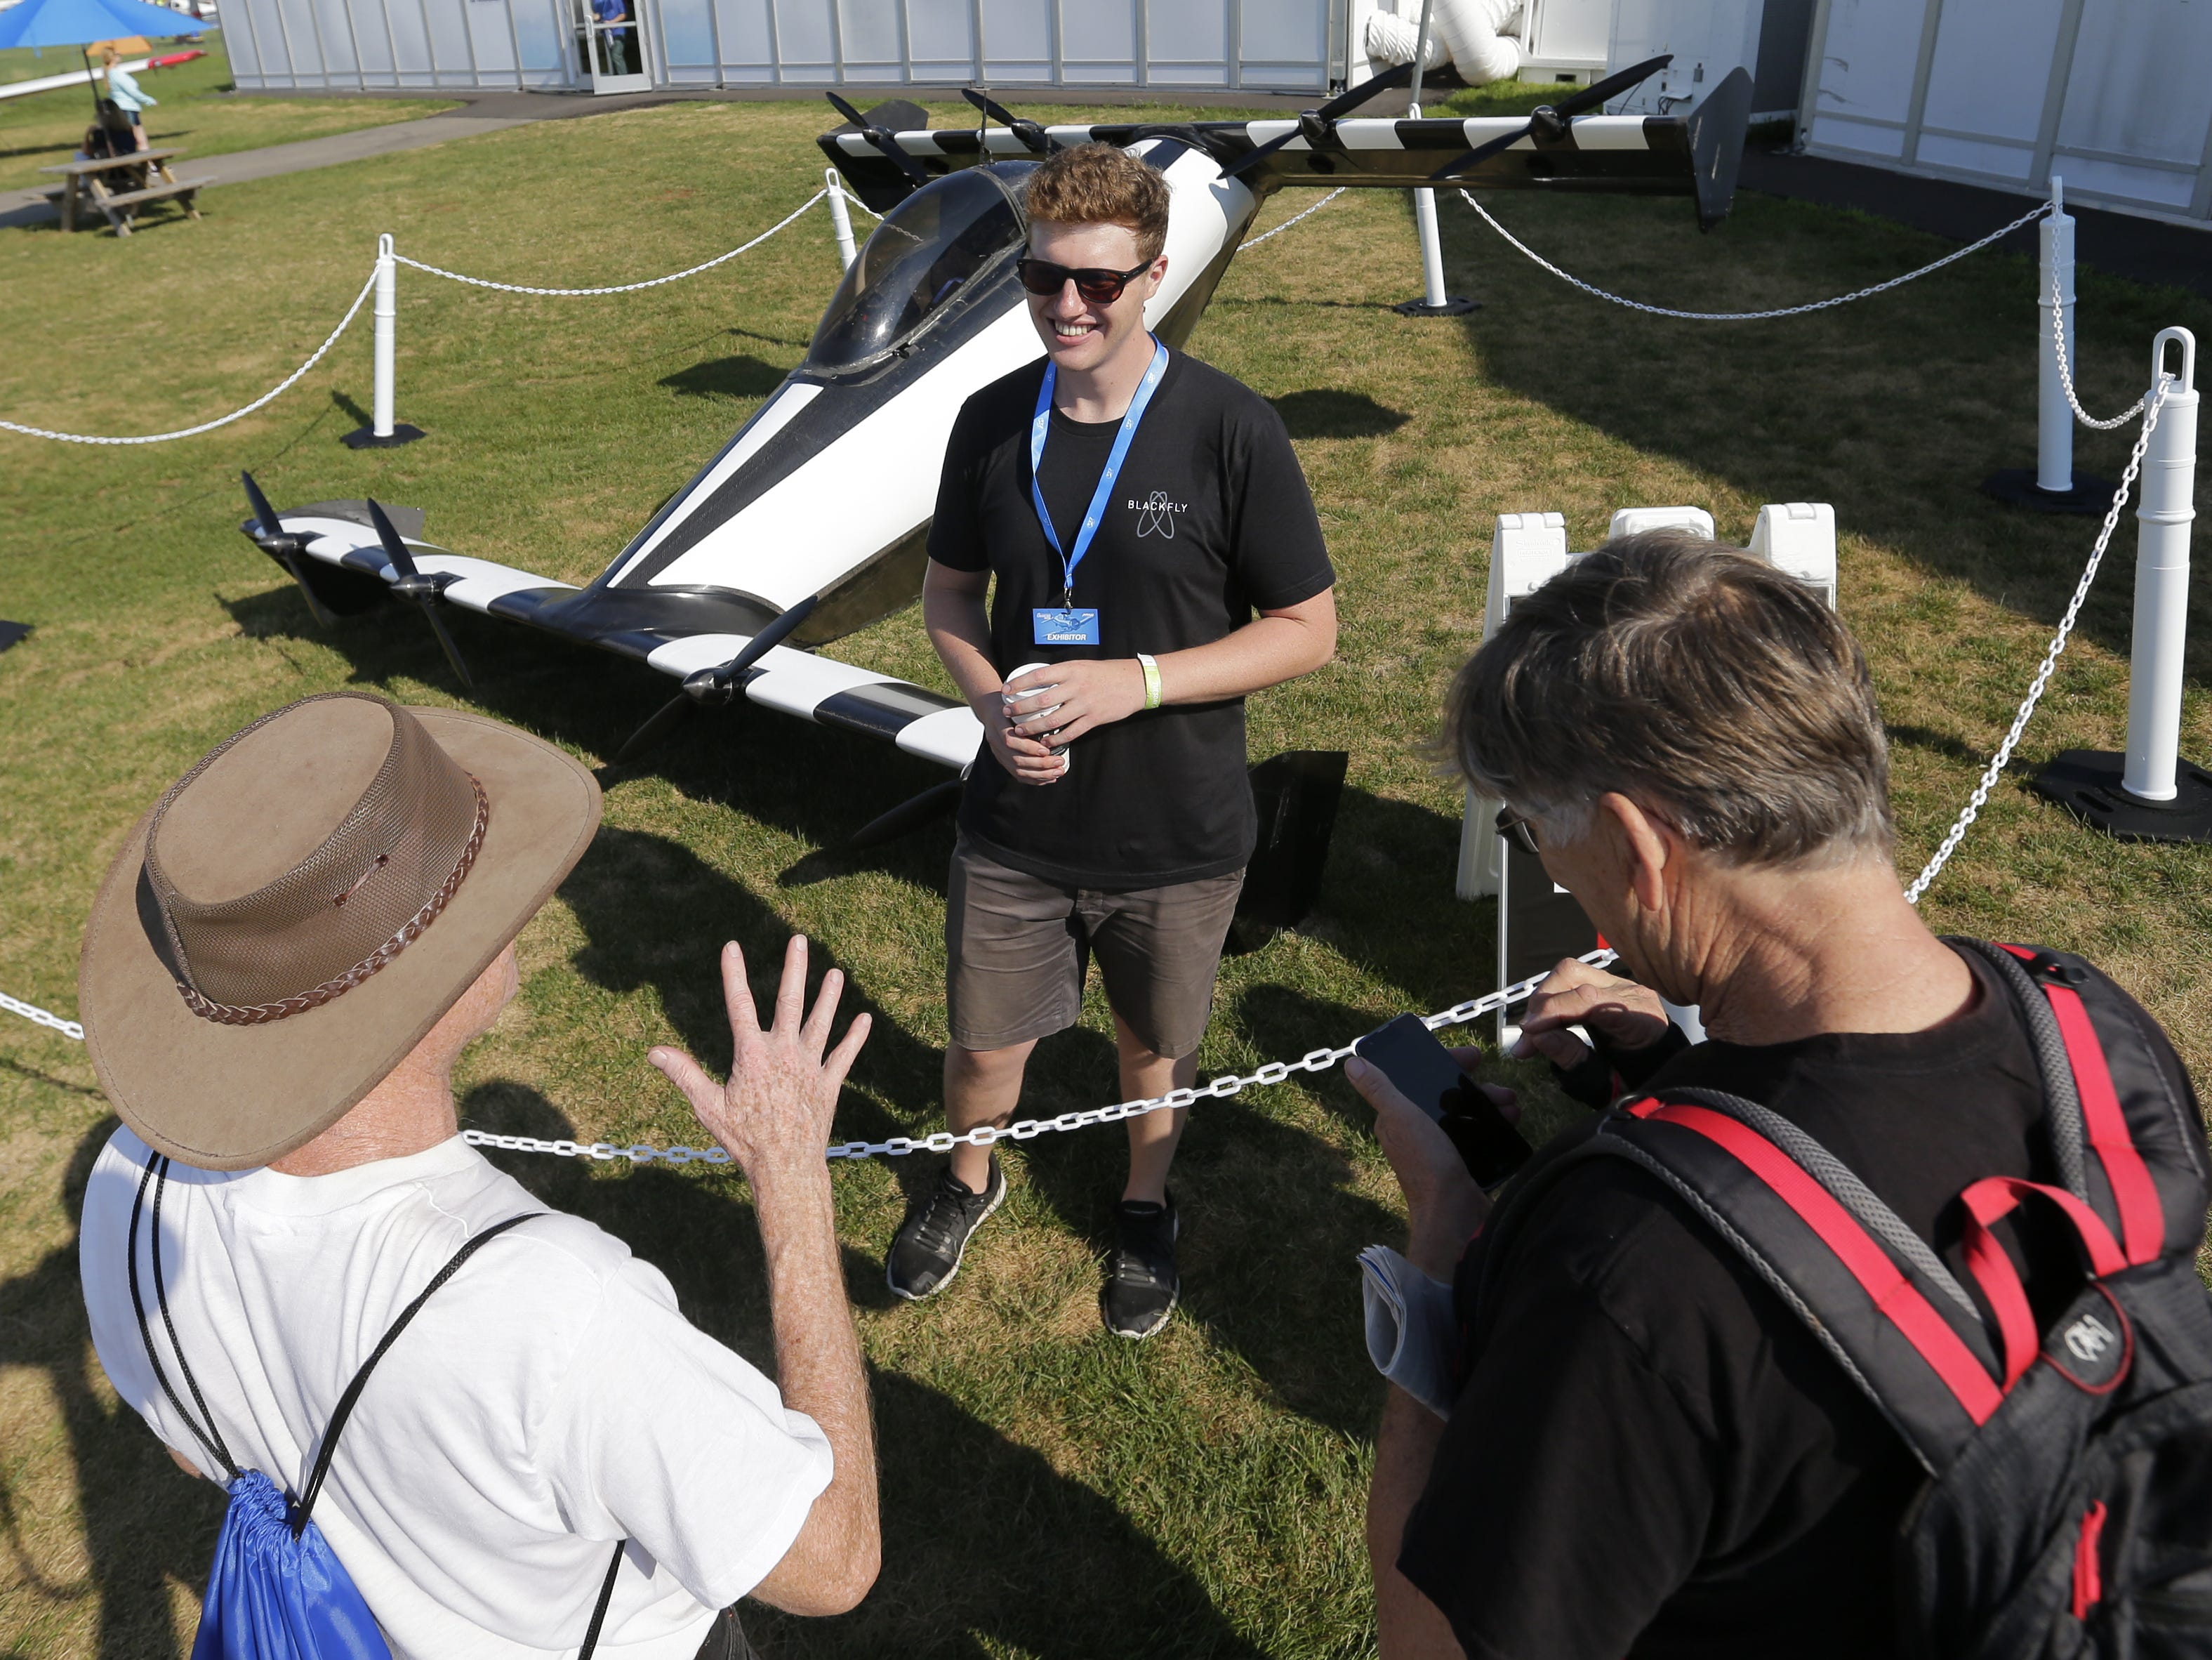 Frank Perkins of Opener based in Palo Alto, talks to spectators about the BlackFly version 2 flying car based in Palo Alto, California Tuesday, July 24, 2018, in Oshkosh, Wis.  The 66th annual Experimental Aircraft Association Fly-In Convention, AirVenture 2018 draws over 500,000 people annually to the area.  The convention runs through July 29. Joe Sienkiewicz/USA Today NETWORK-Wisconsin